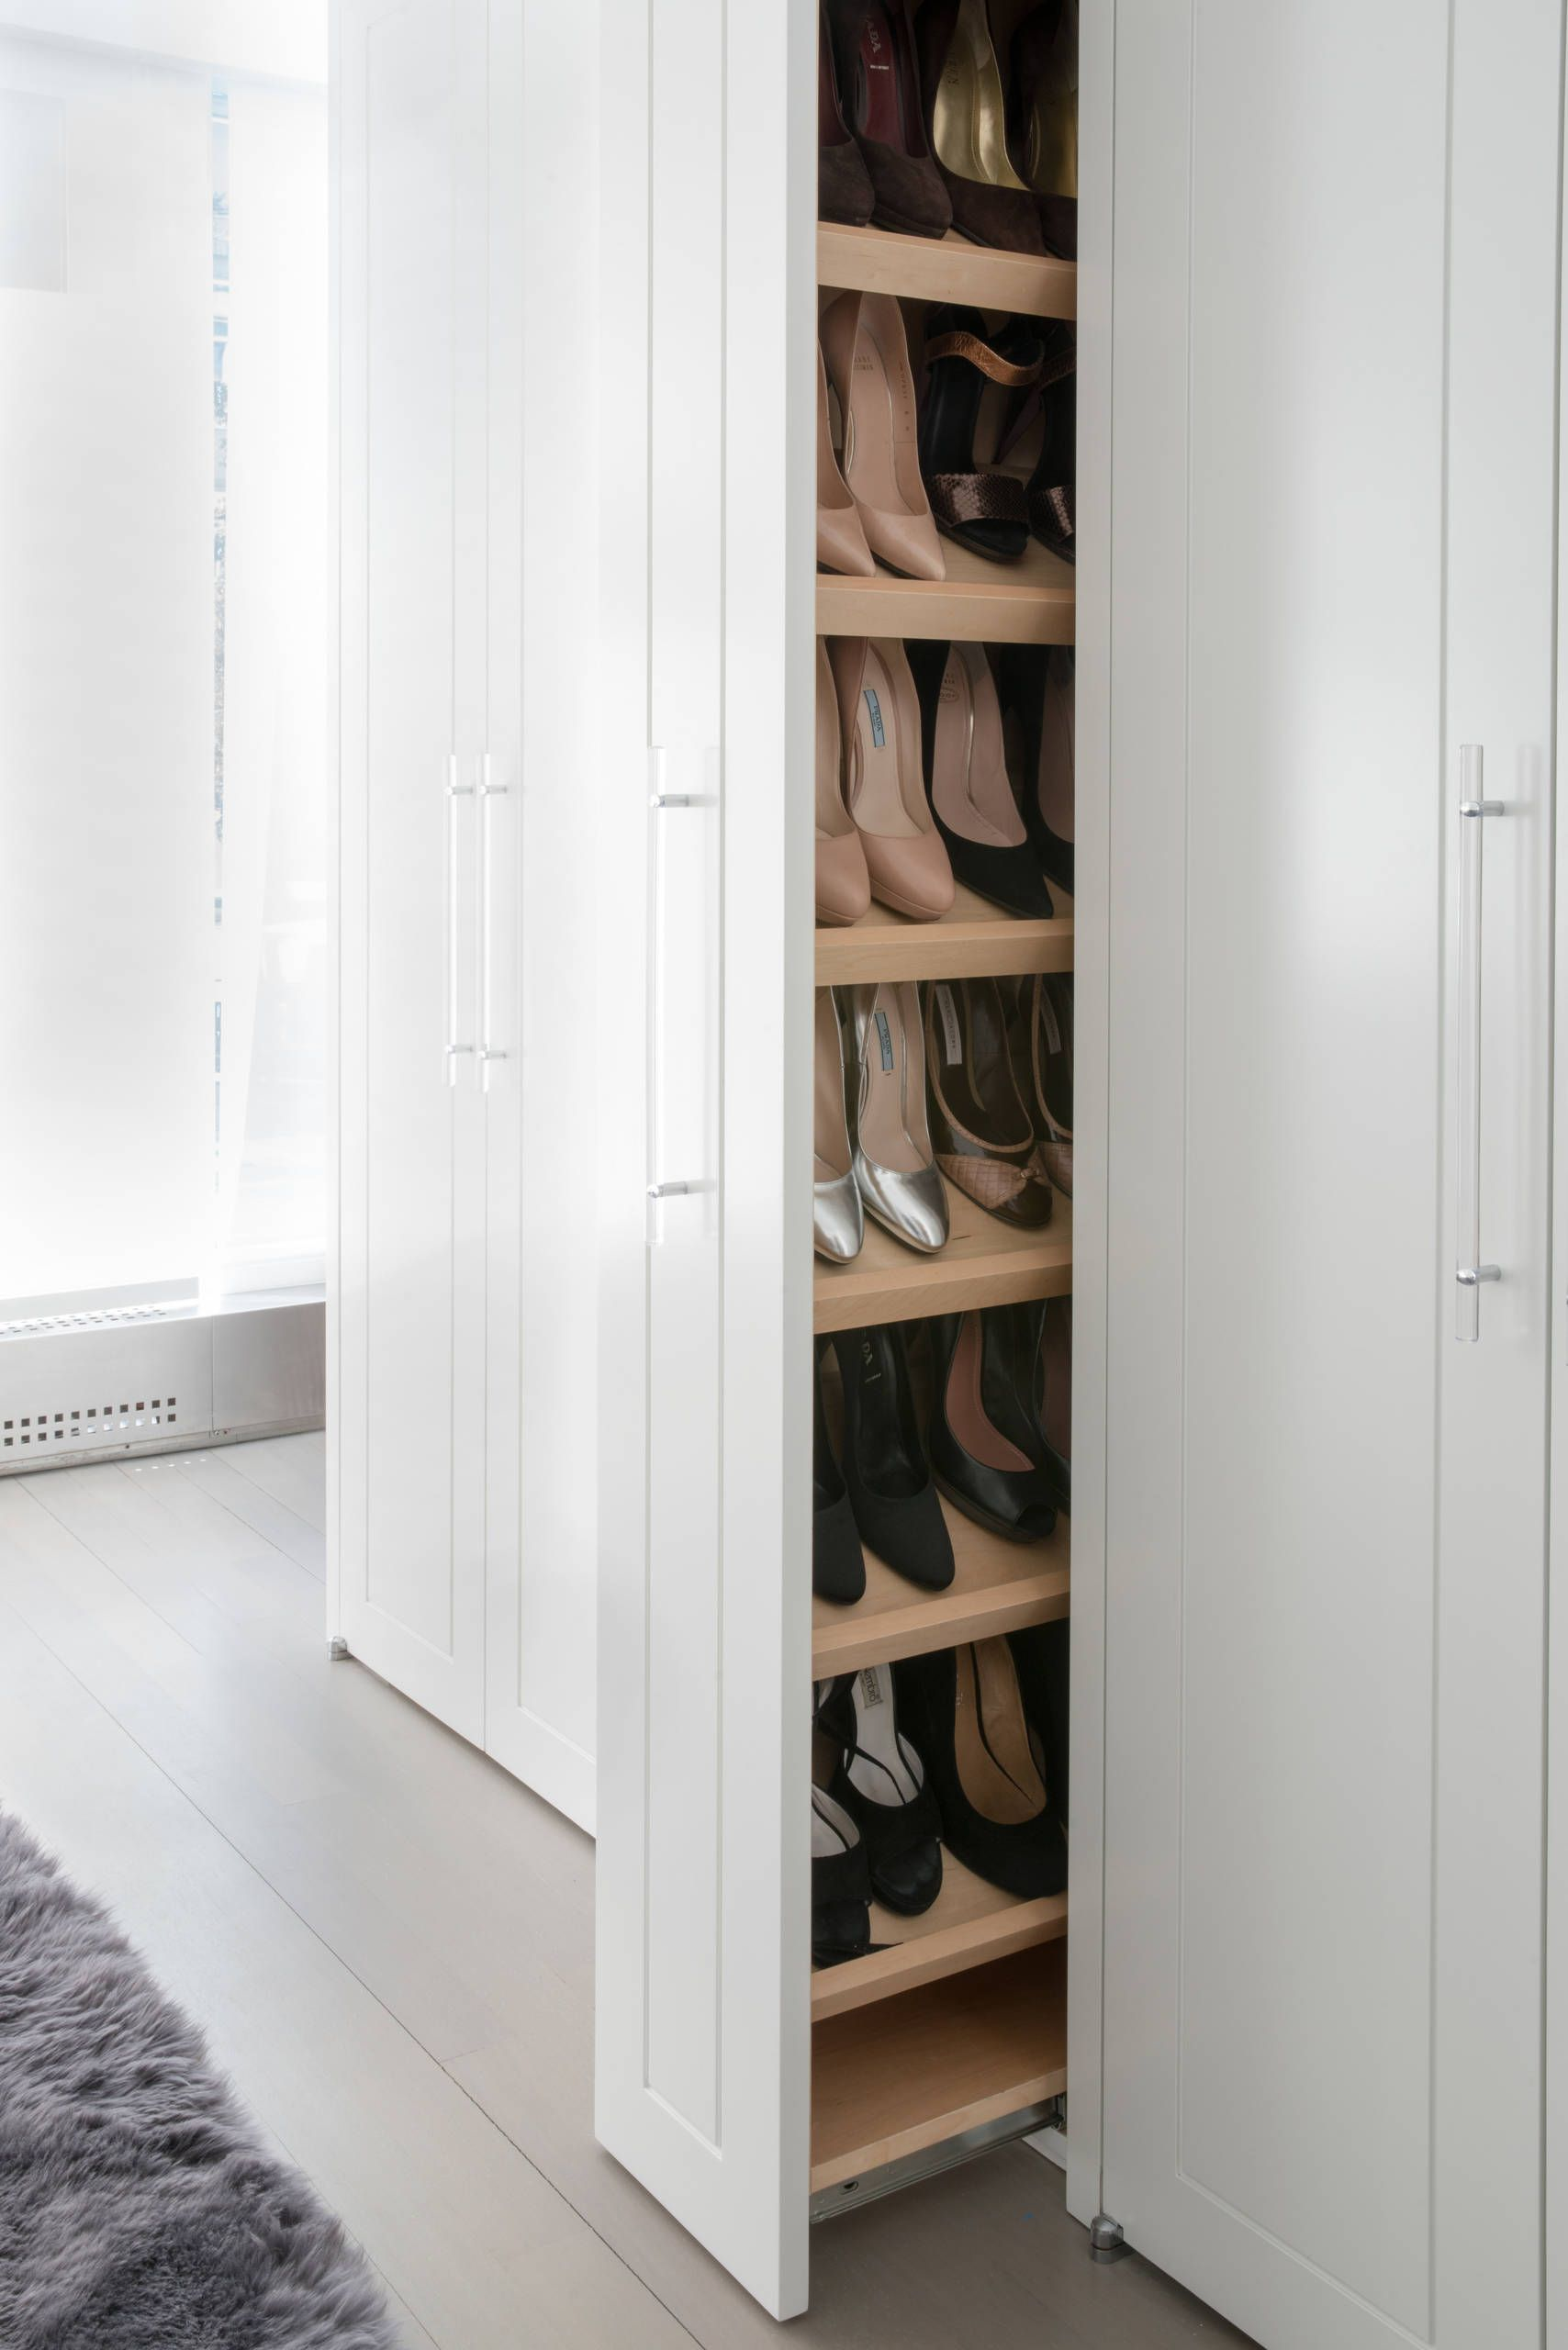 19 Wonderful Walk-In Closets